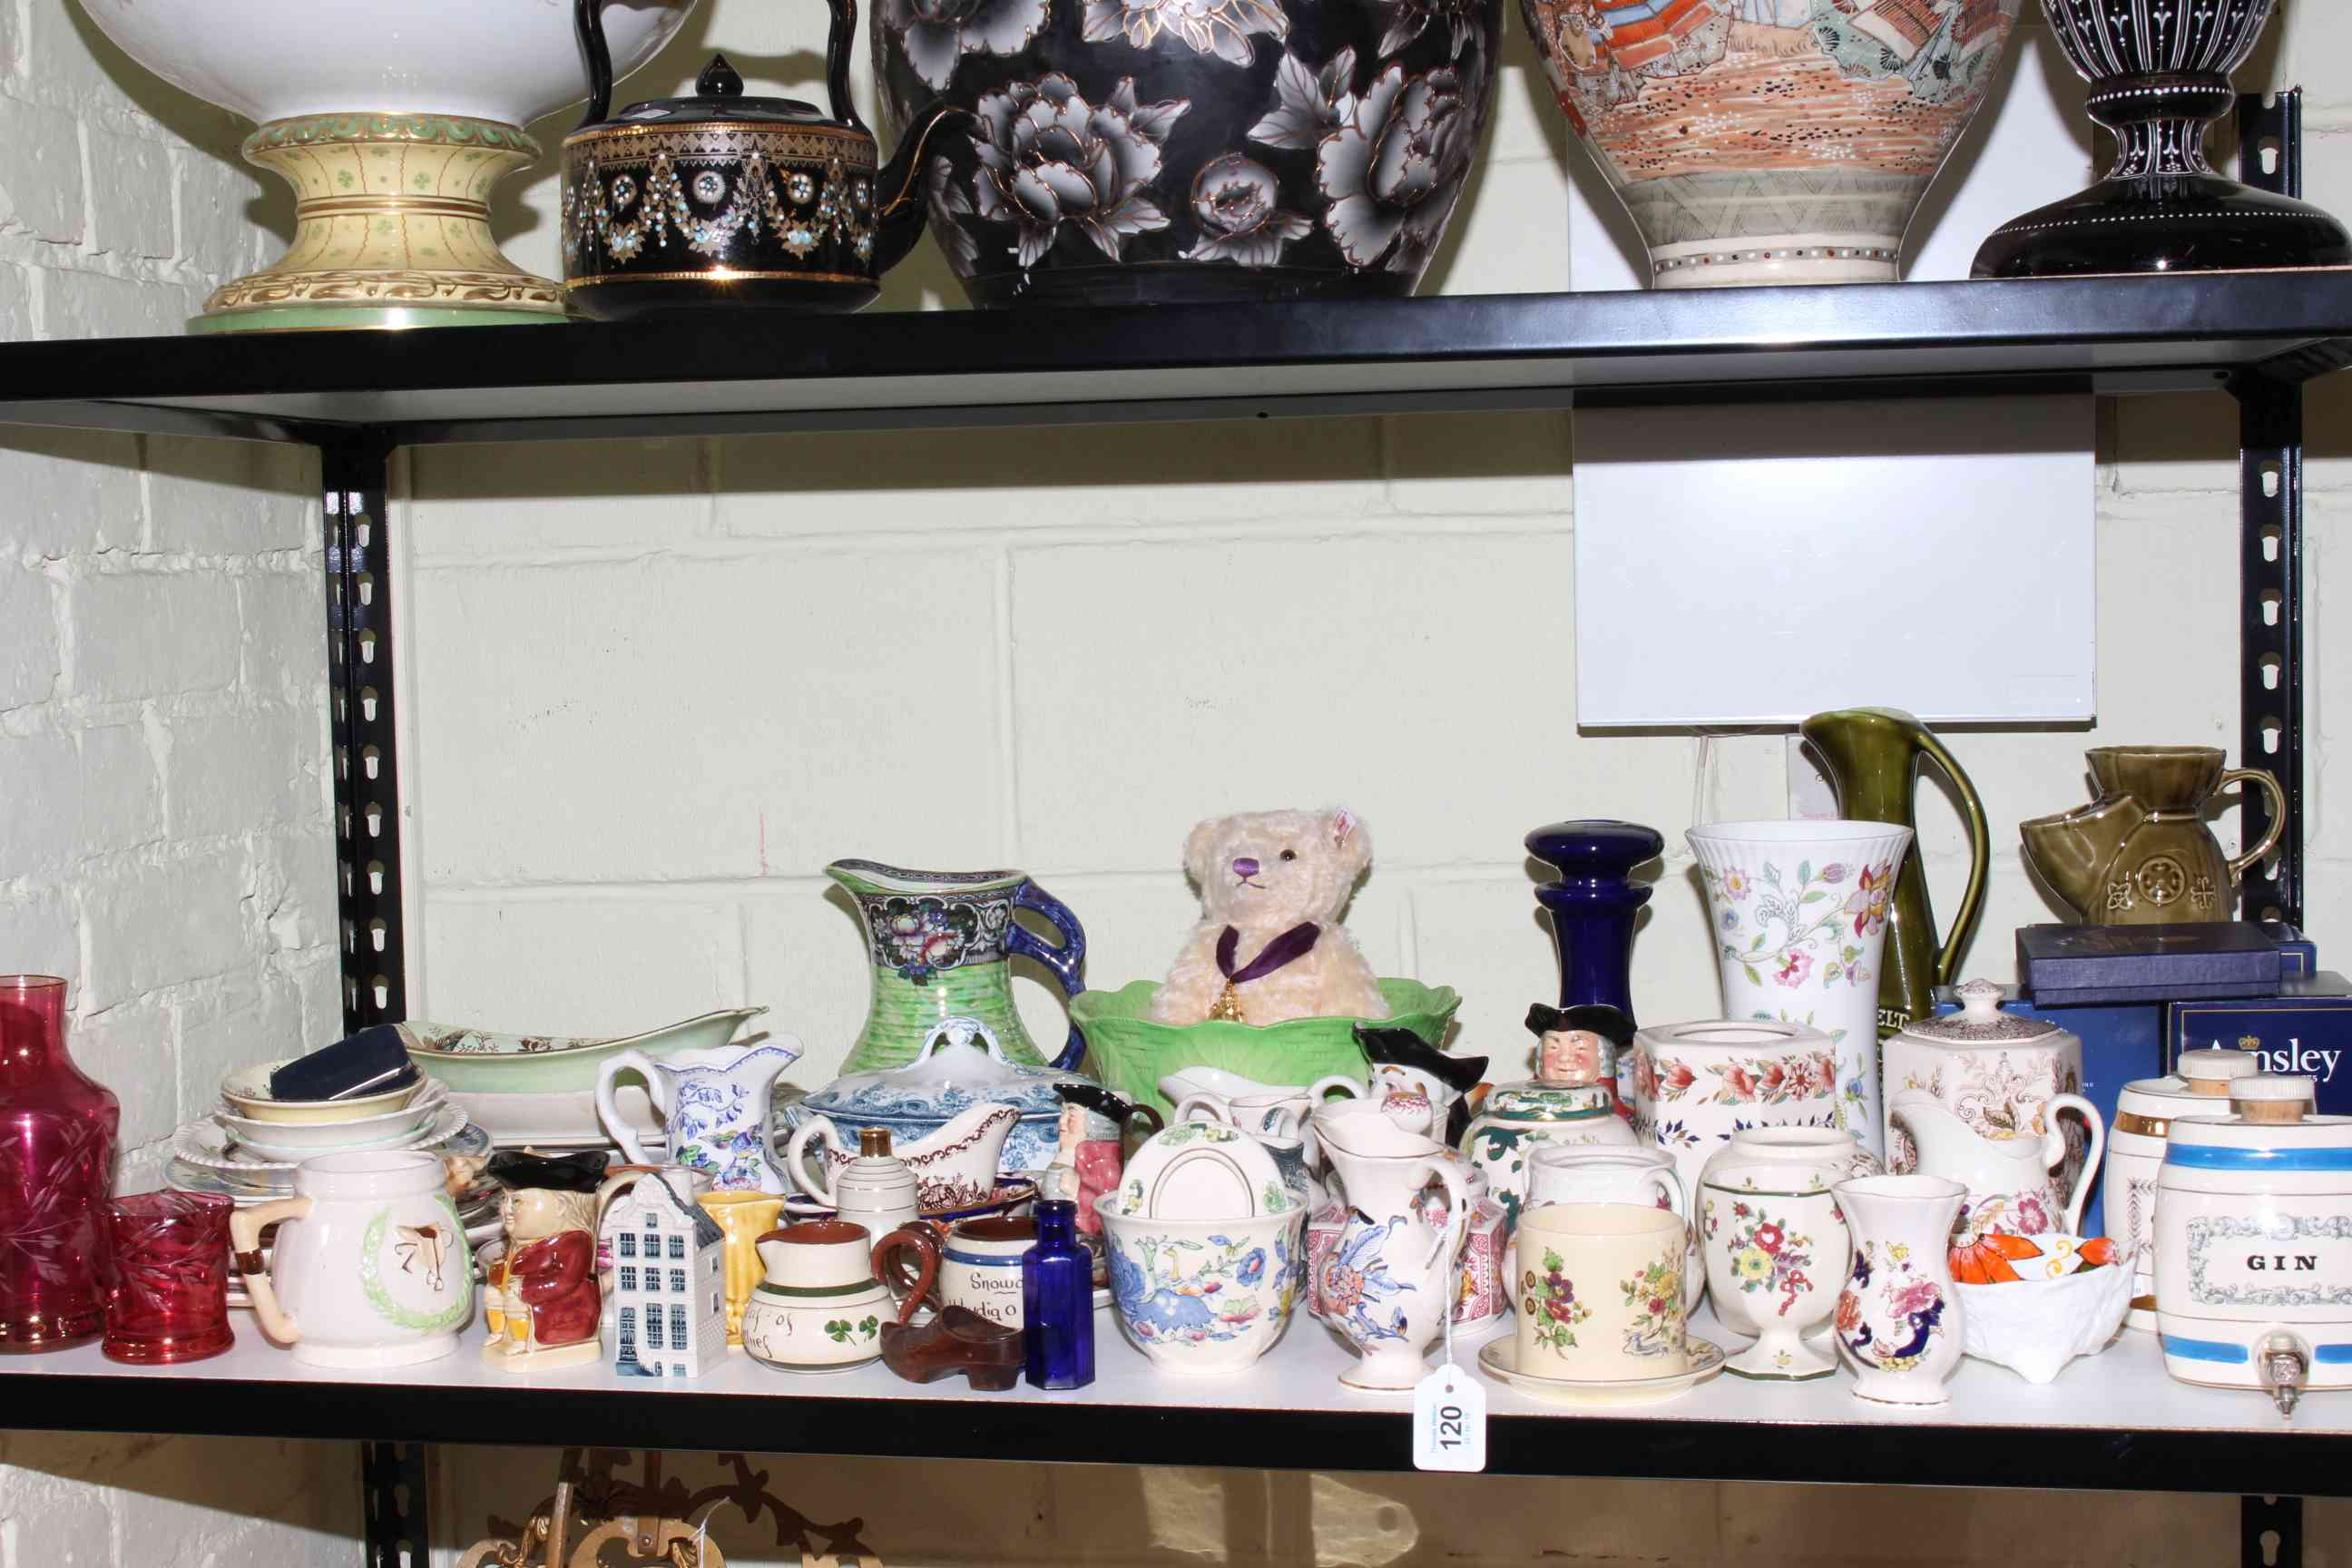 Lot 120 - Large collection of china including Masons, Maling, Aynsley, etc.